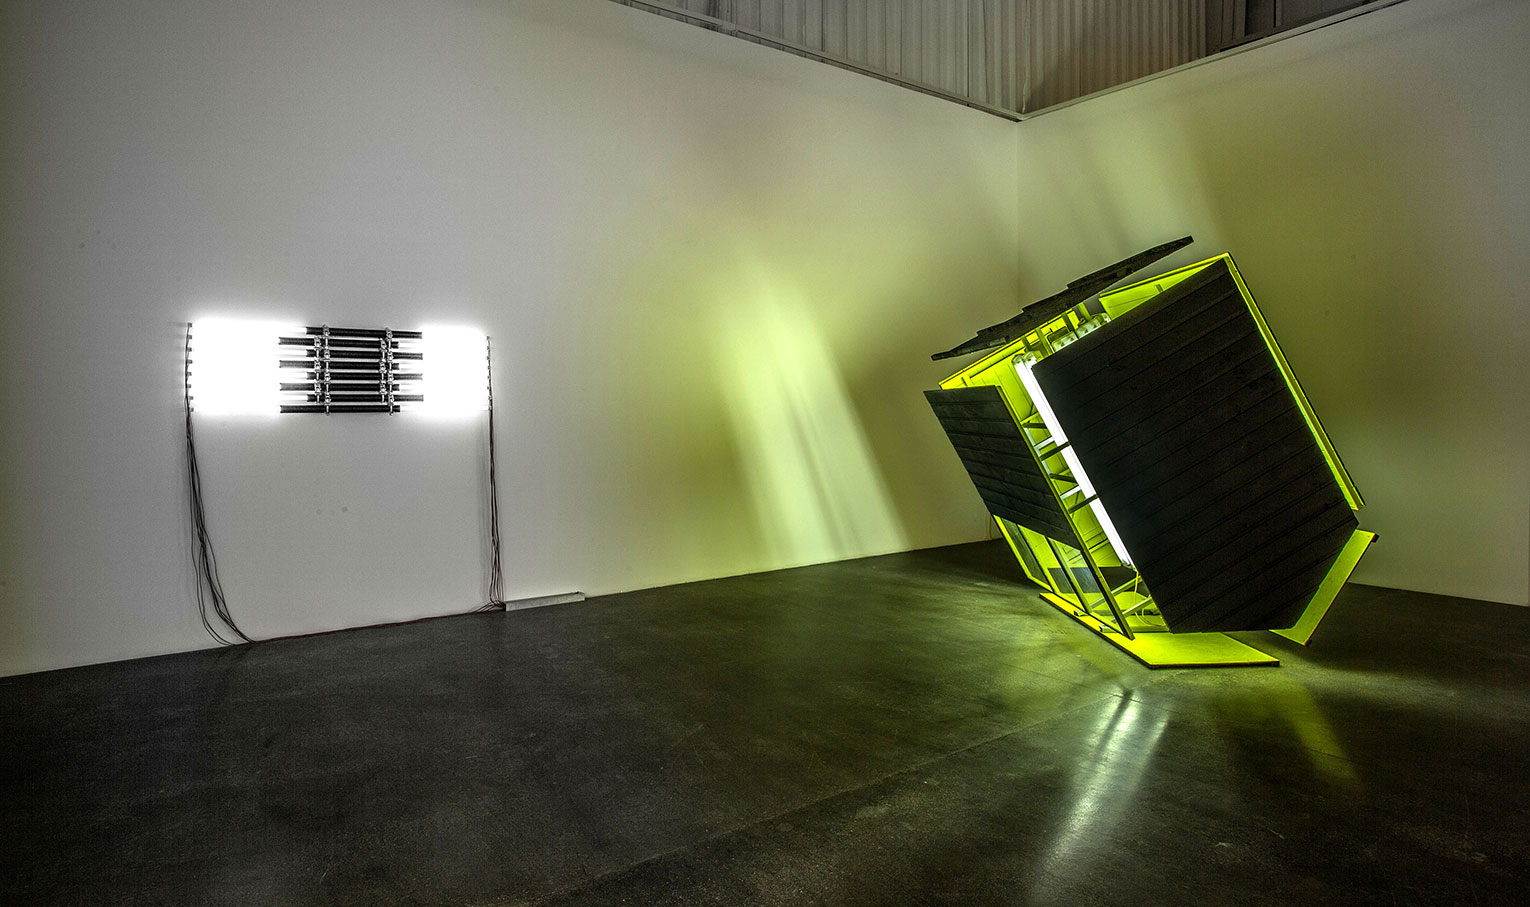 <b>Title: </b>Black Shed Expanded<br /><b>Year: </b>2016<br /><b>Medium: </b>Timber shed, fluorescent lights and fittings, bitumen, paint, steel<br /><b>Size: </b>240 x 240 x 240 cm